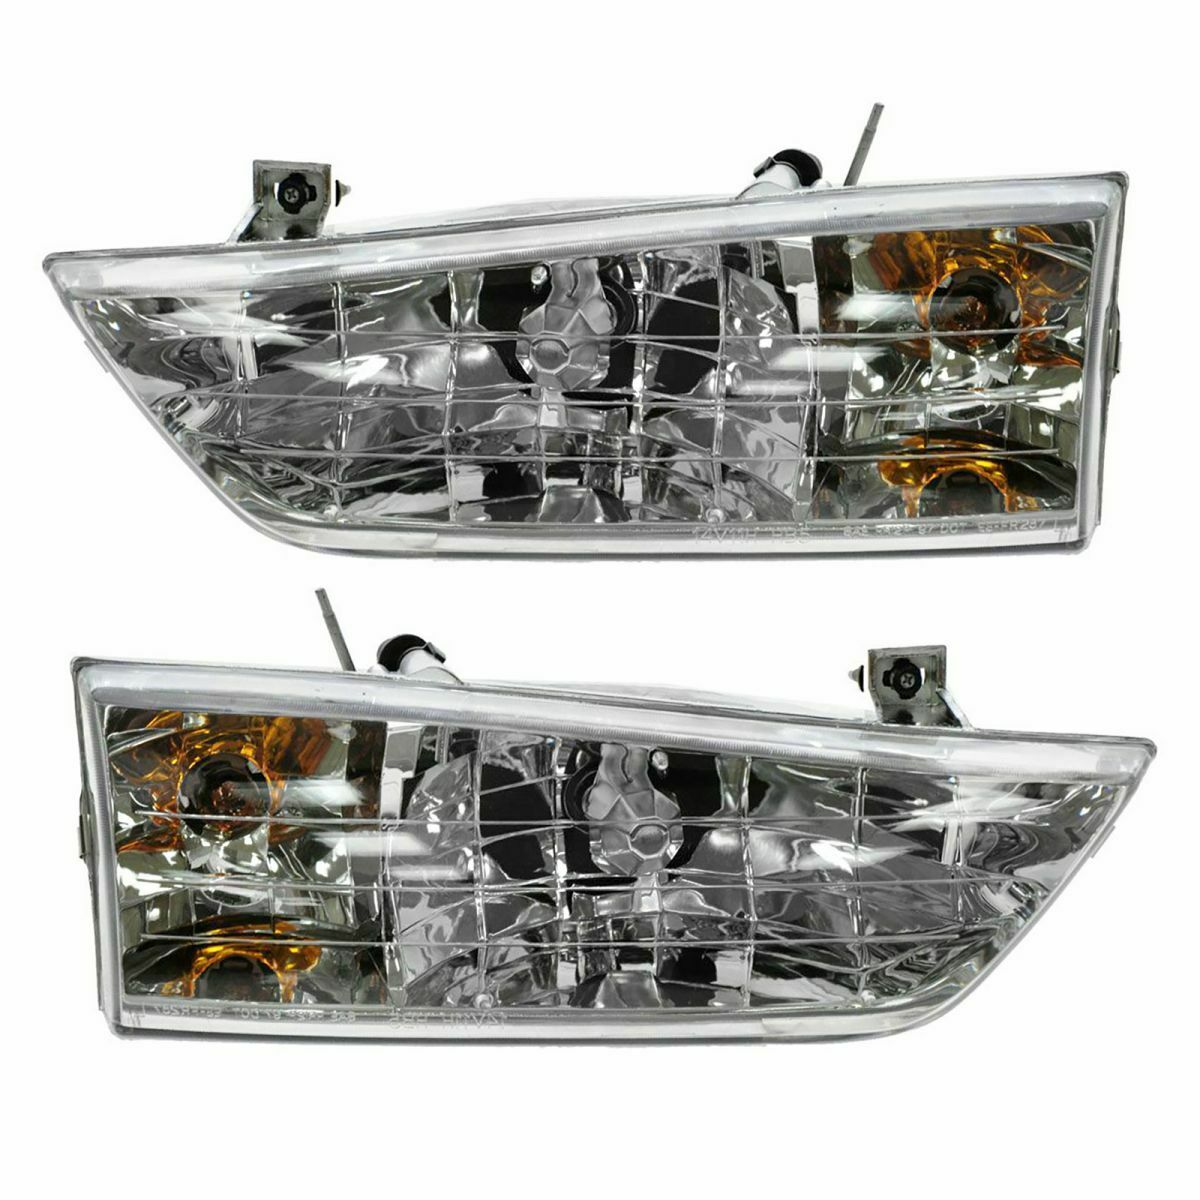 Headlights Headlamps Left & Right Pair Set NEW for 1998 Ford Windstar